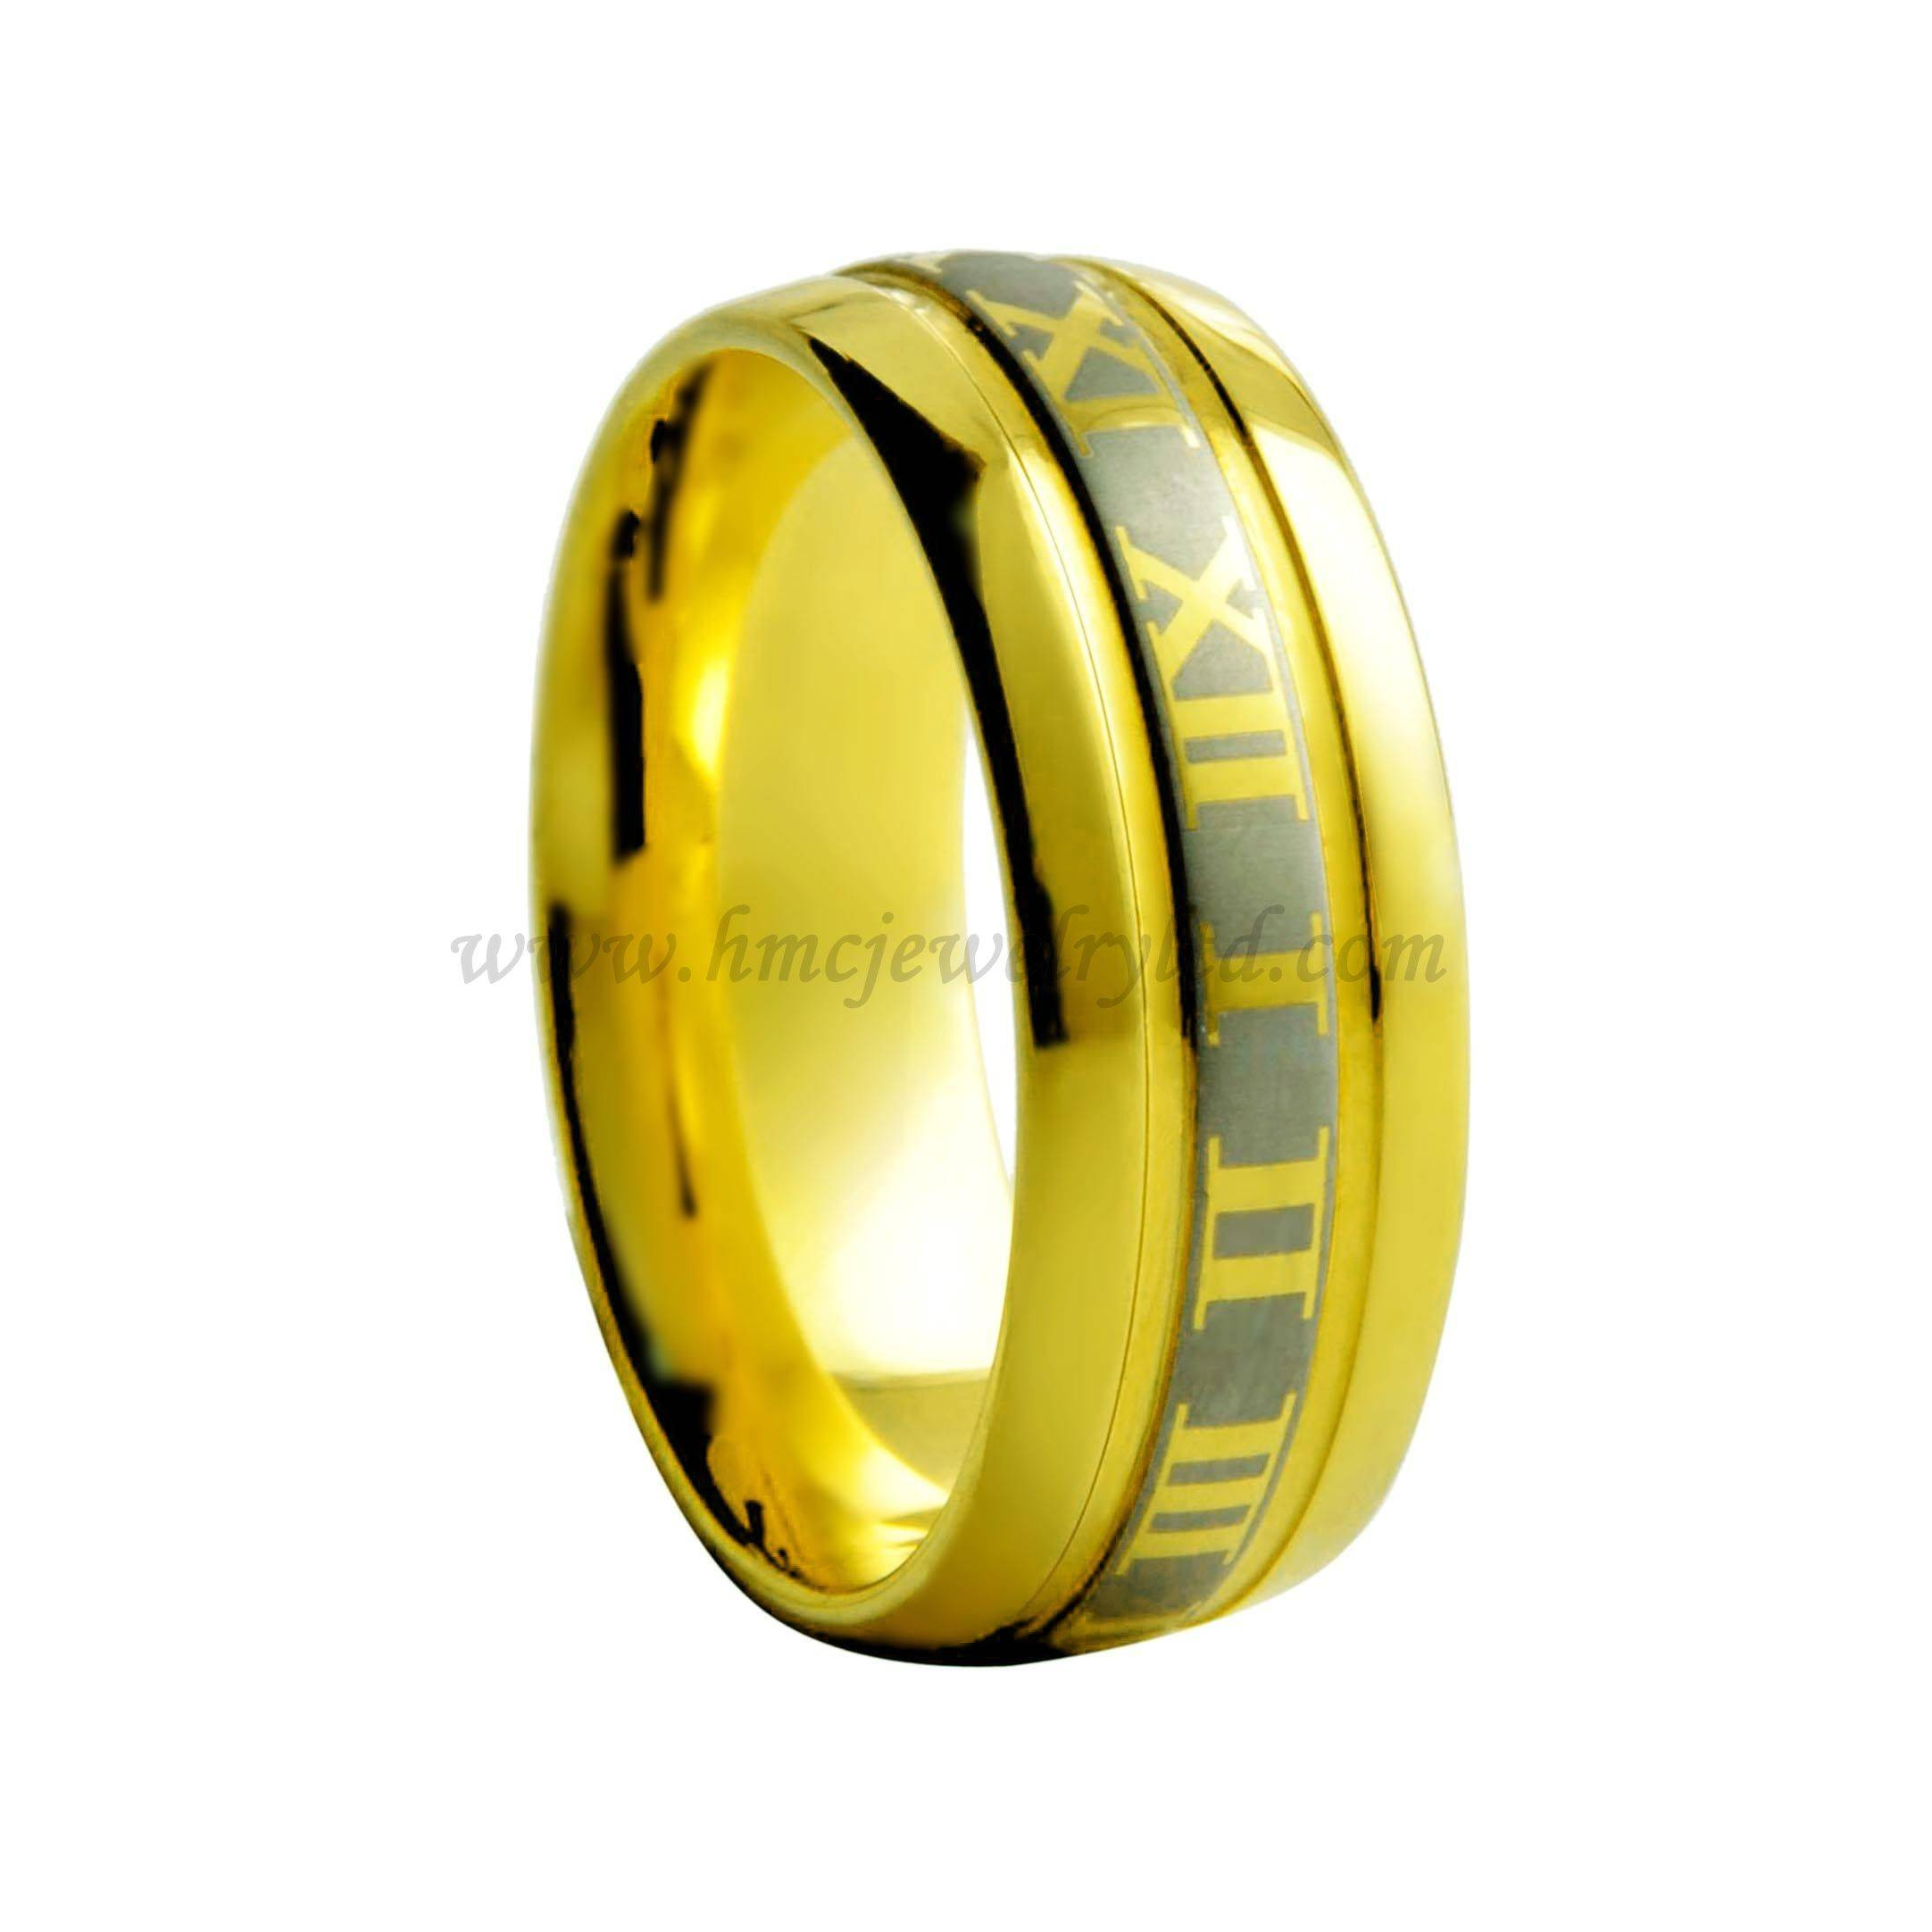 Vogue jewelry wedding ring, Roman numerals laser style gold tungsten carbide ring